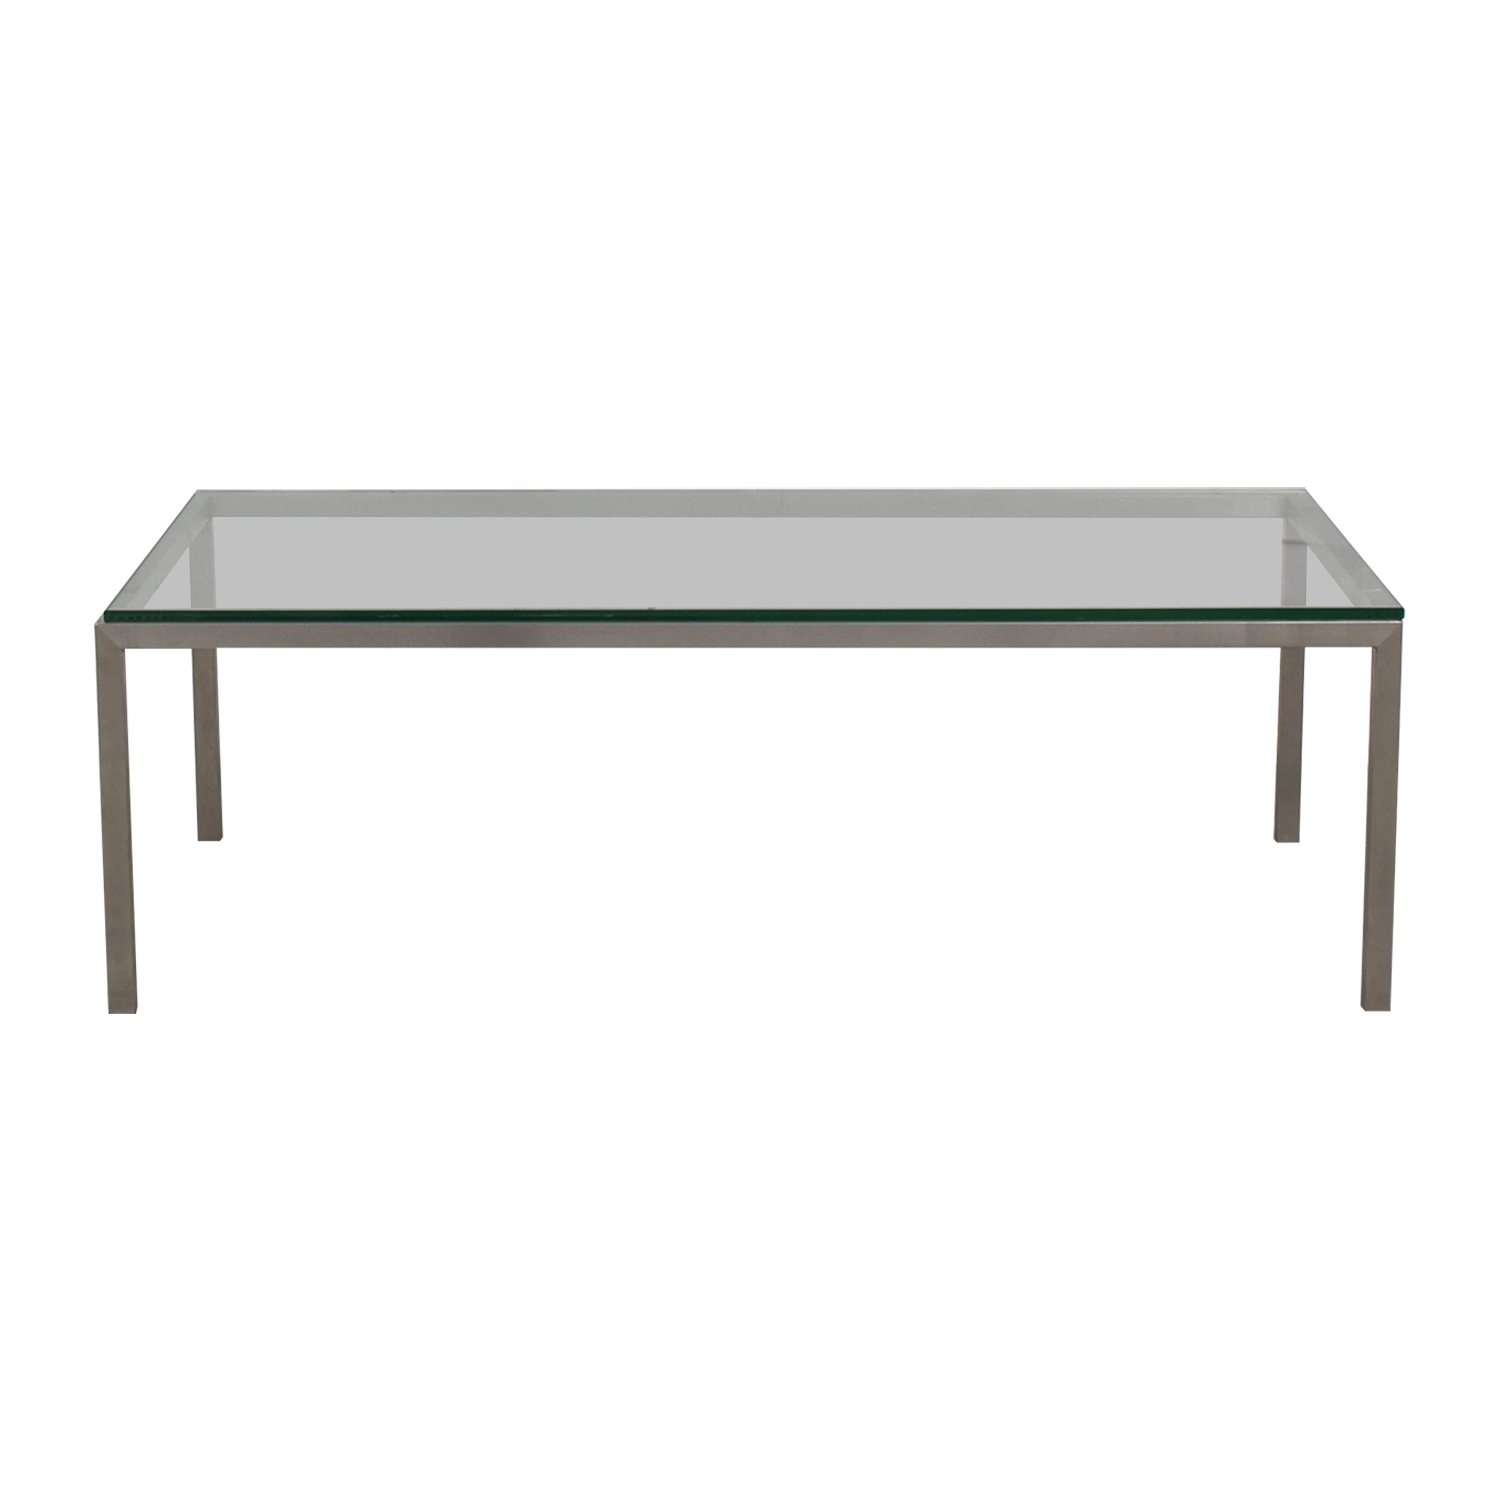 Room and Board Room & Board Portica Glass and Chrome Coffee Table nyc